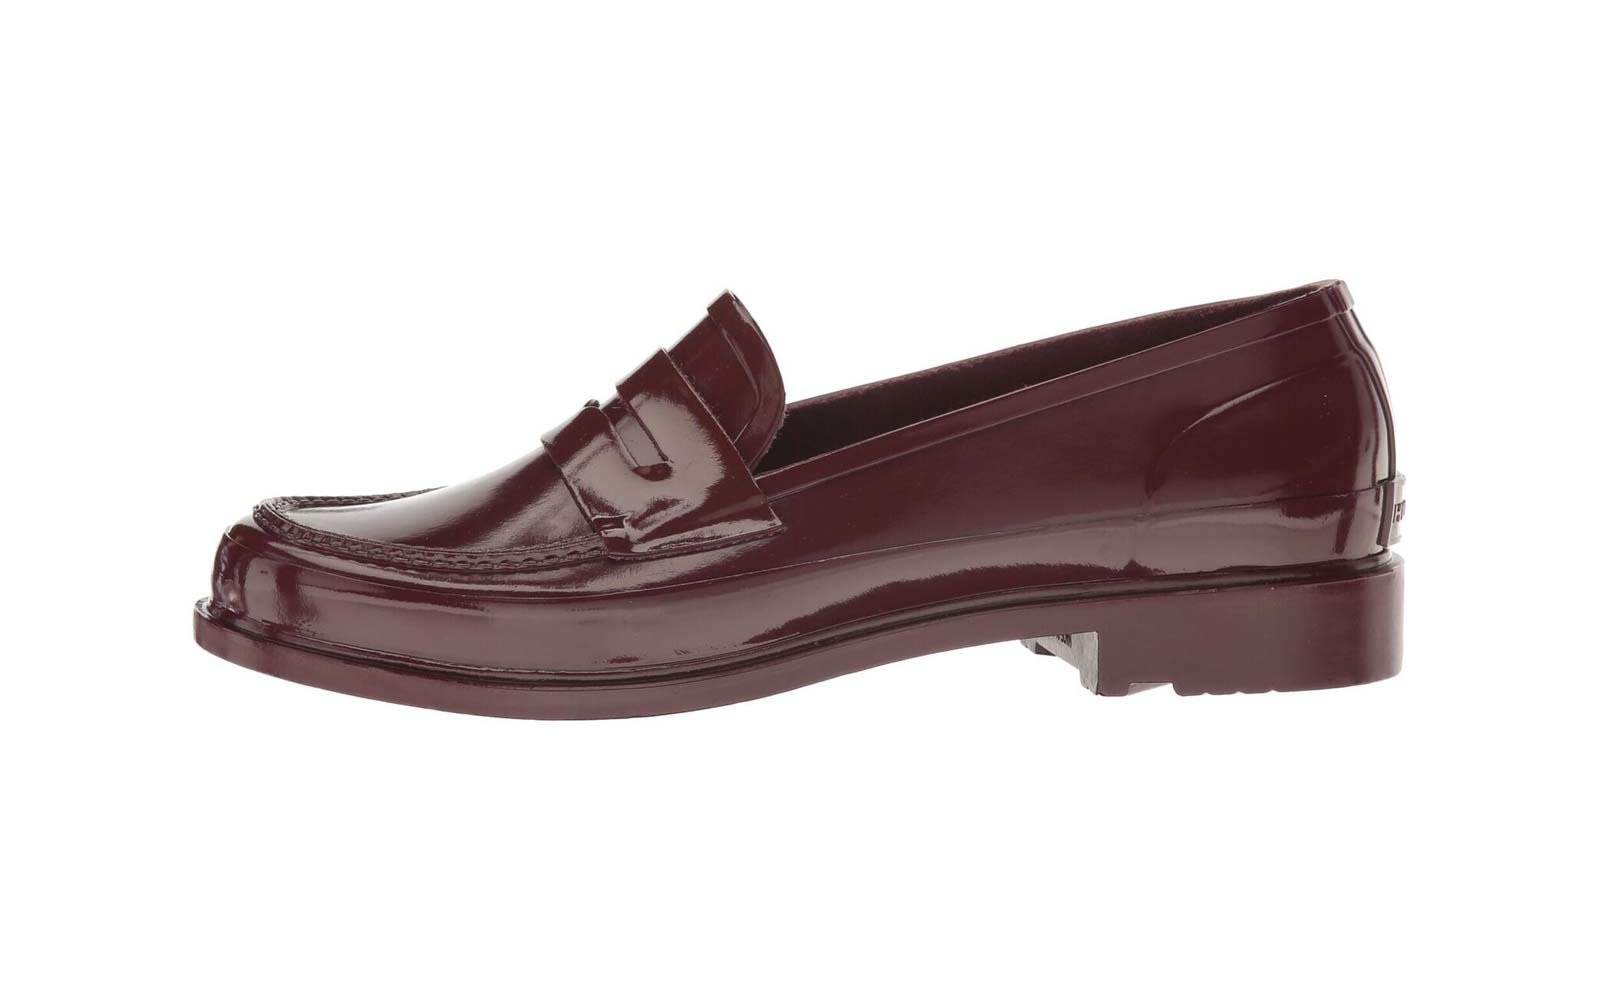 Hunter waterproof loafers